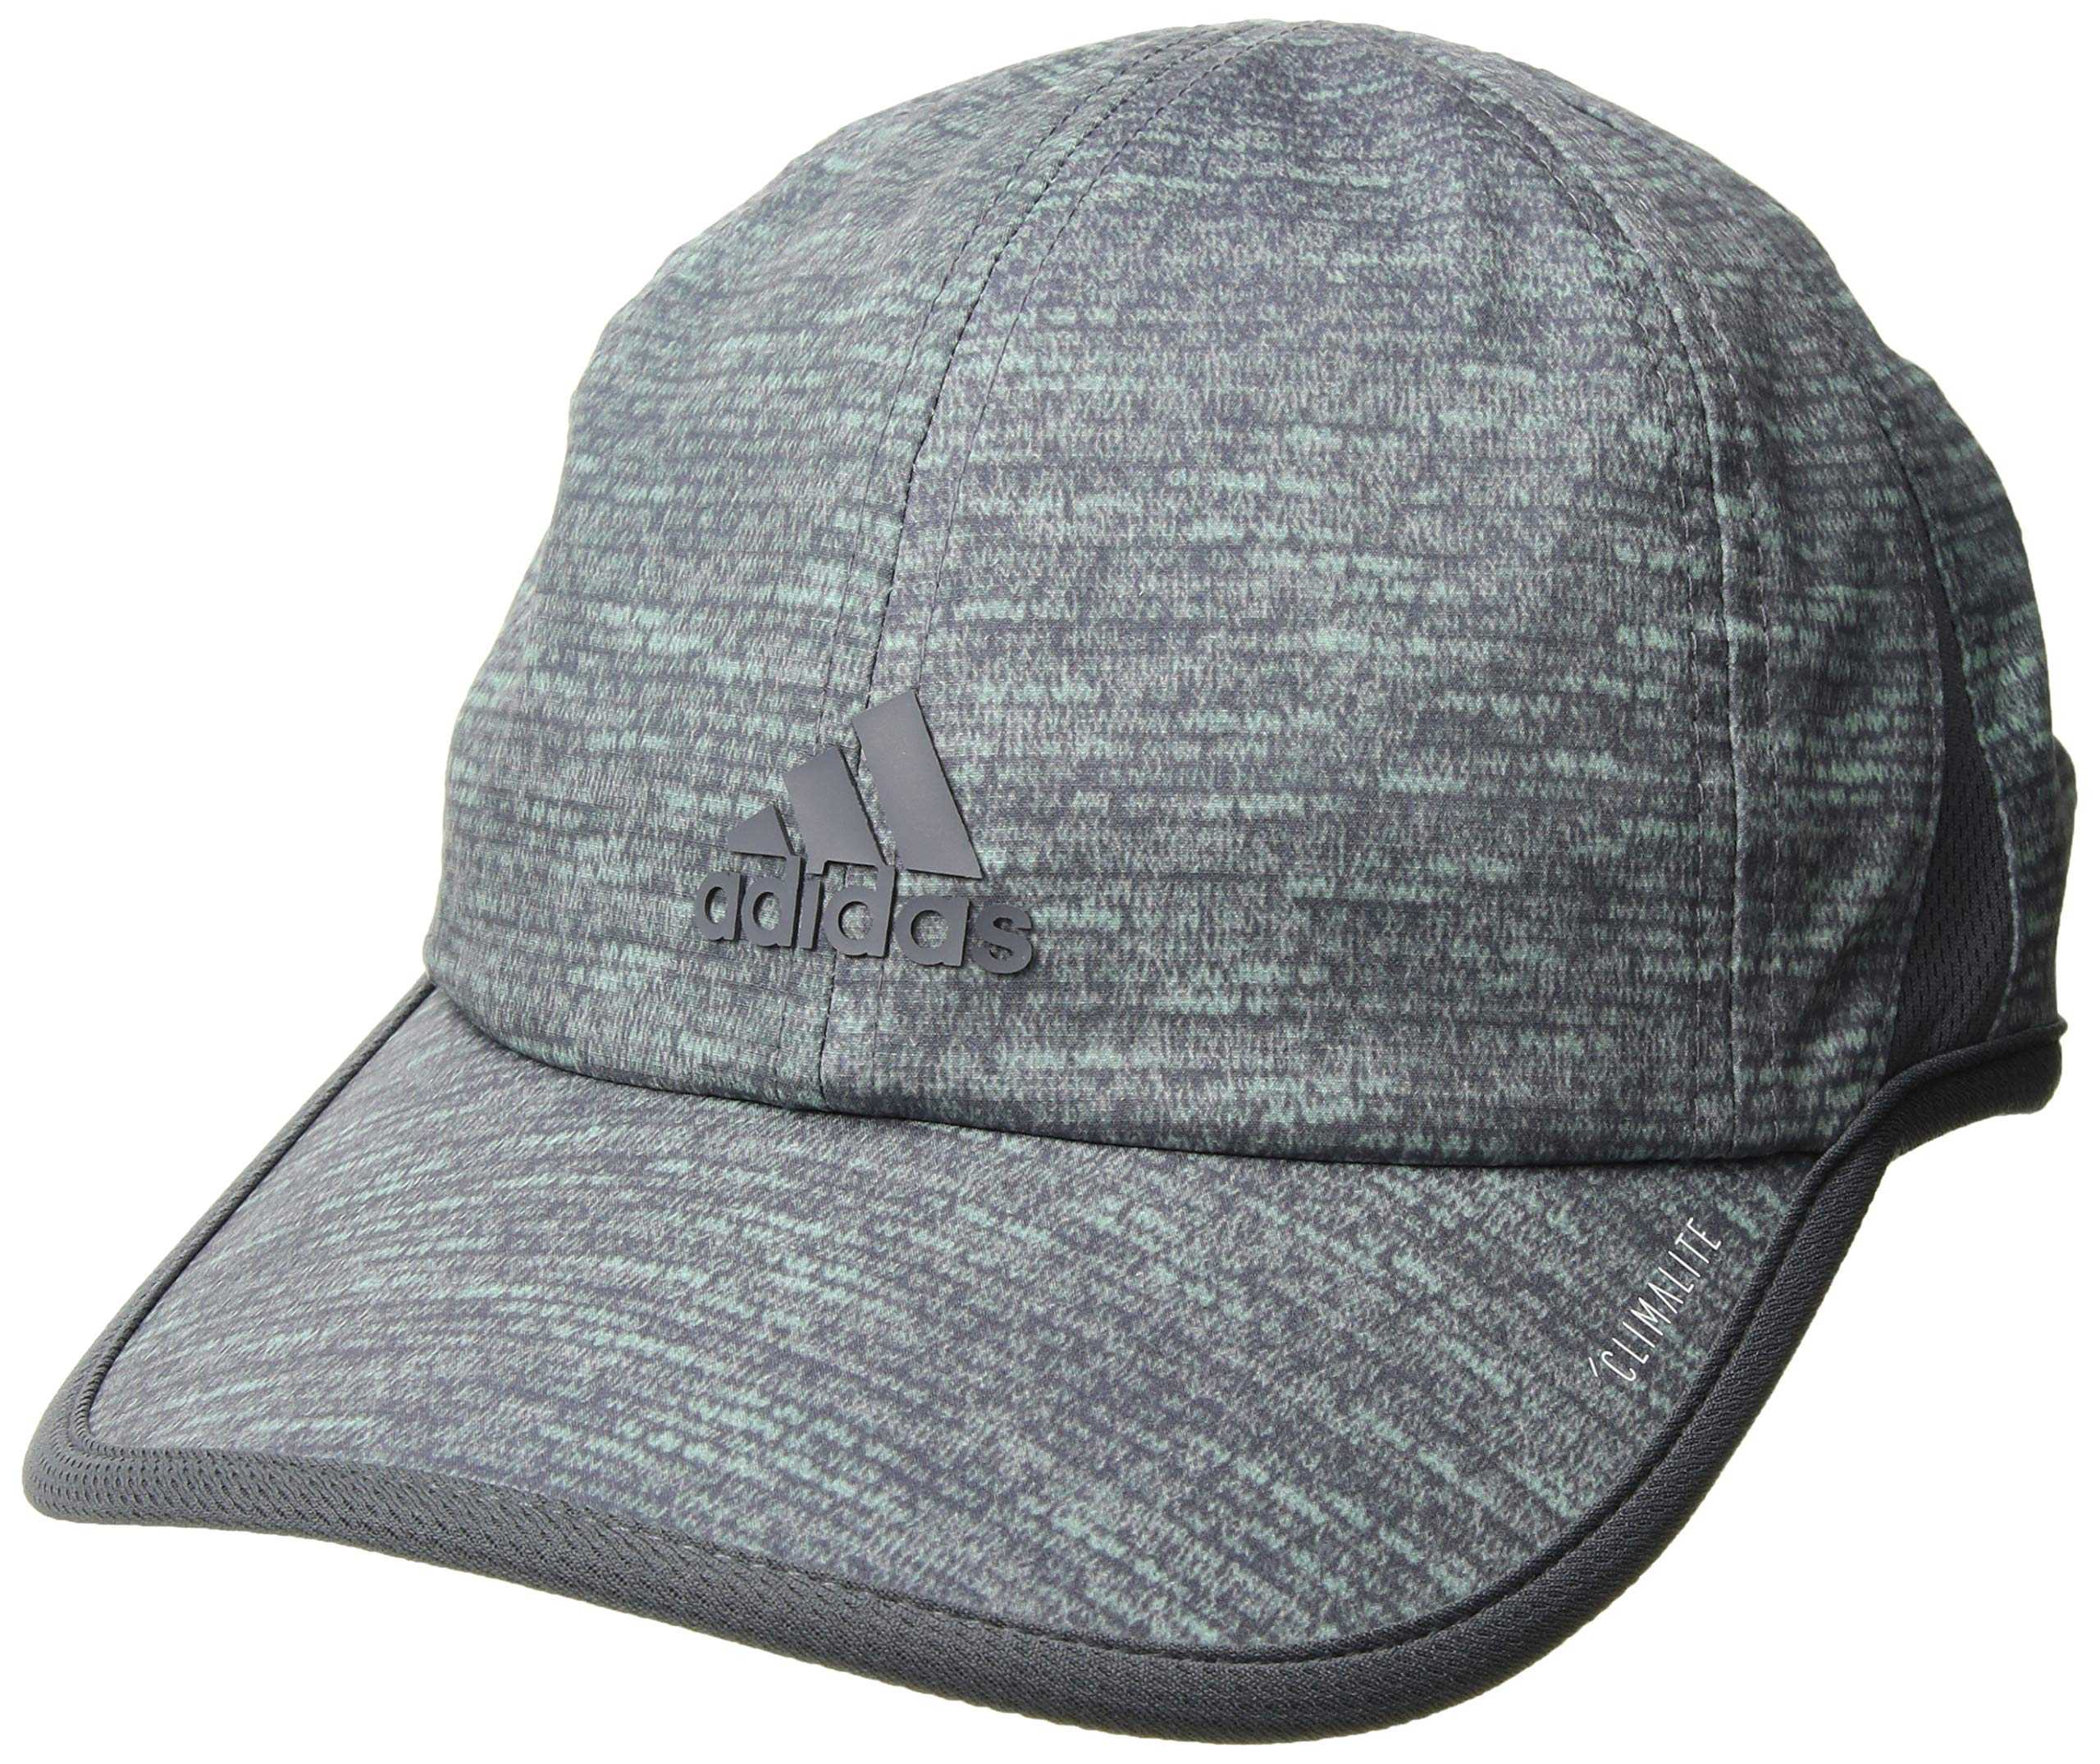 adidas Women's Superlite Pro Relaxed Adjustable Cap, Clear Mint Jersey Fleck/Onix, One Size